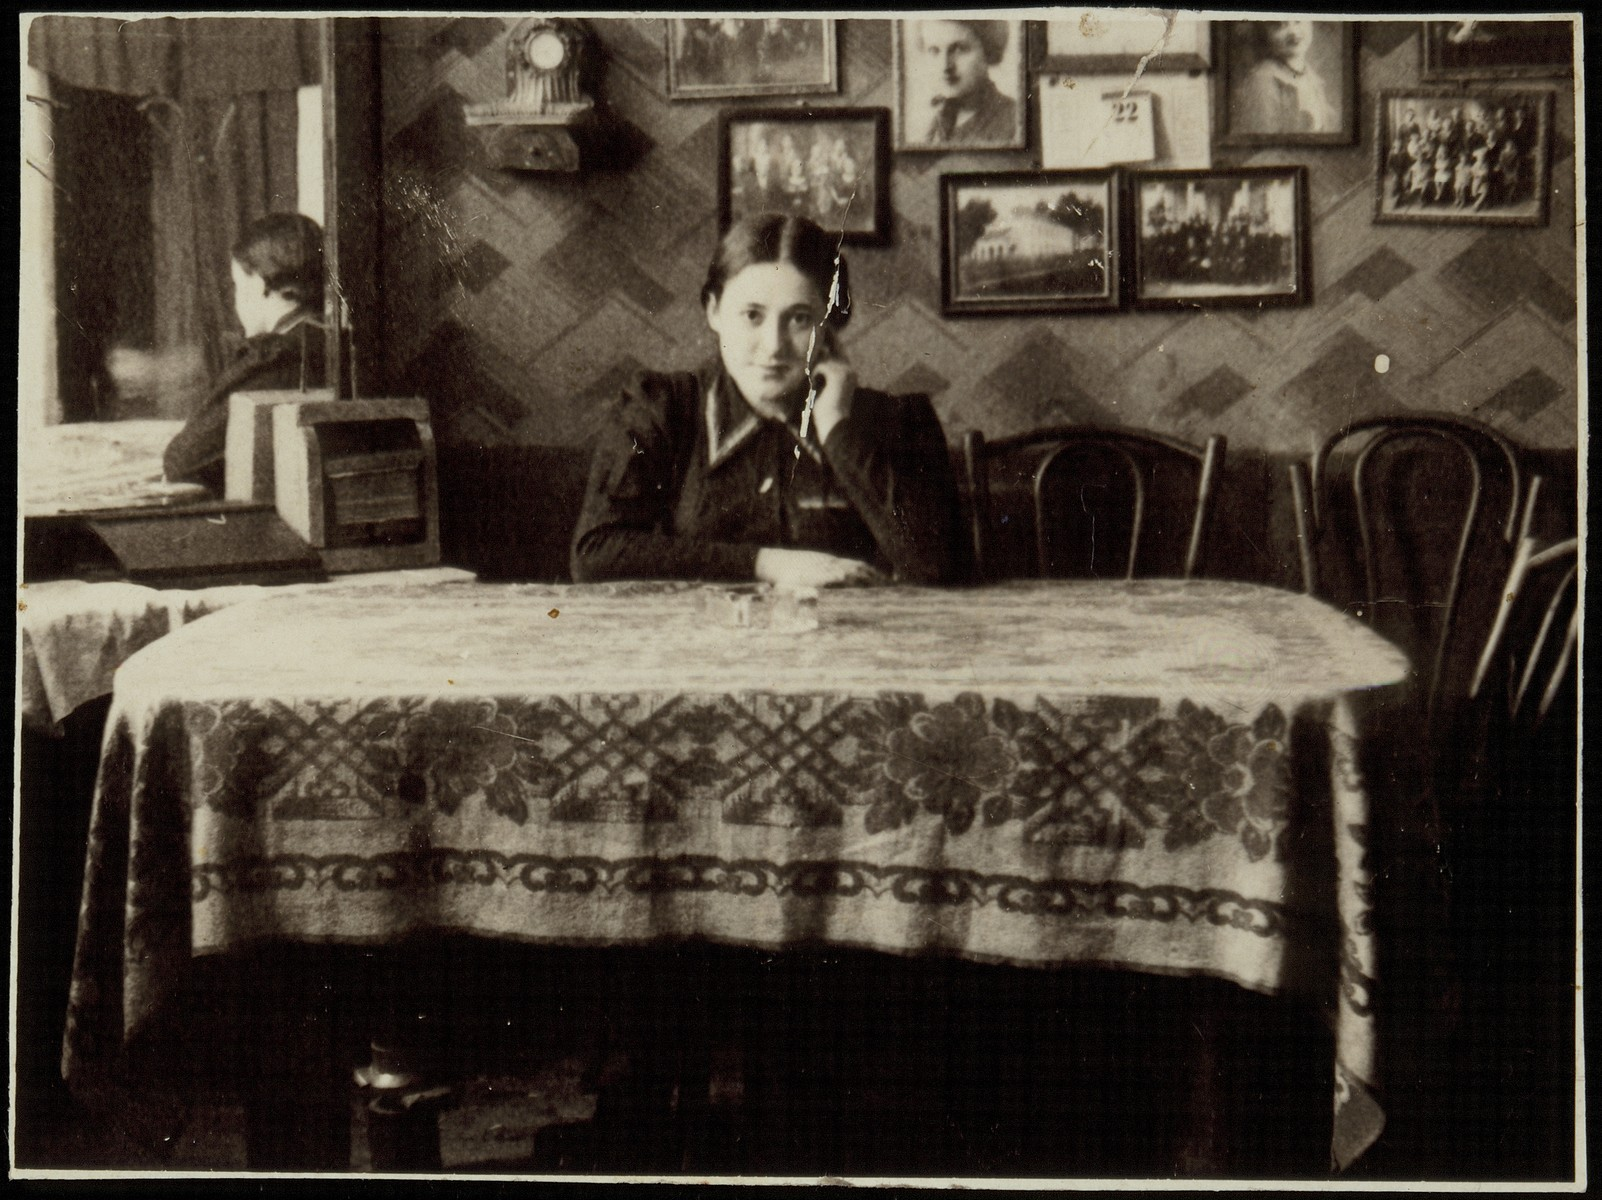 Rivka Pruskin Cofnas sits at a dining room table in the house of the photographer, Rephael Lejbowicz.